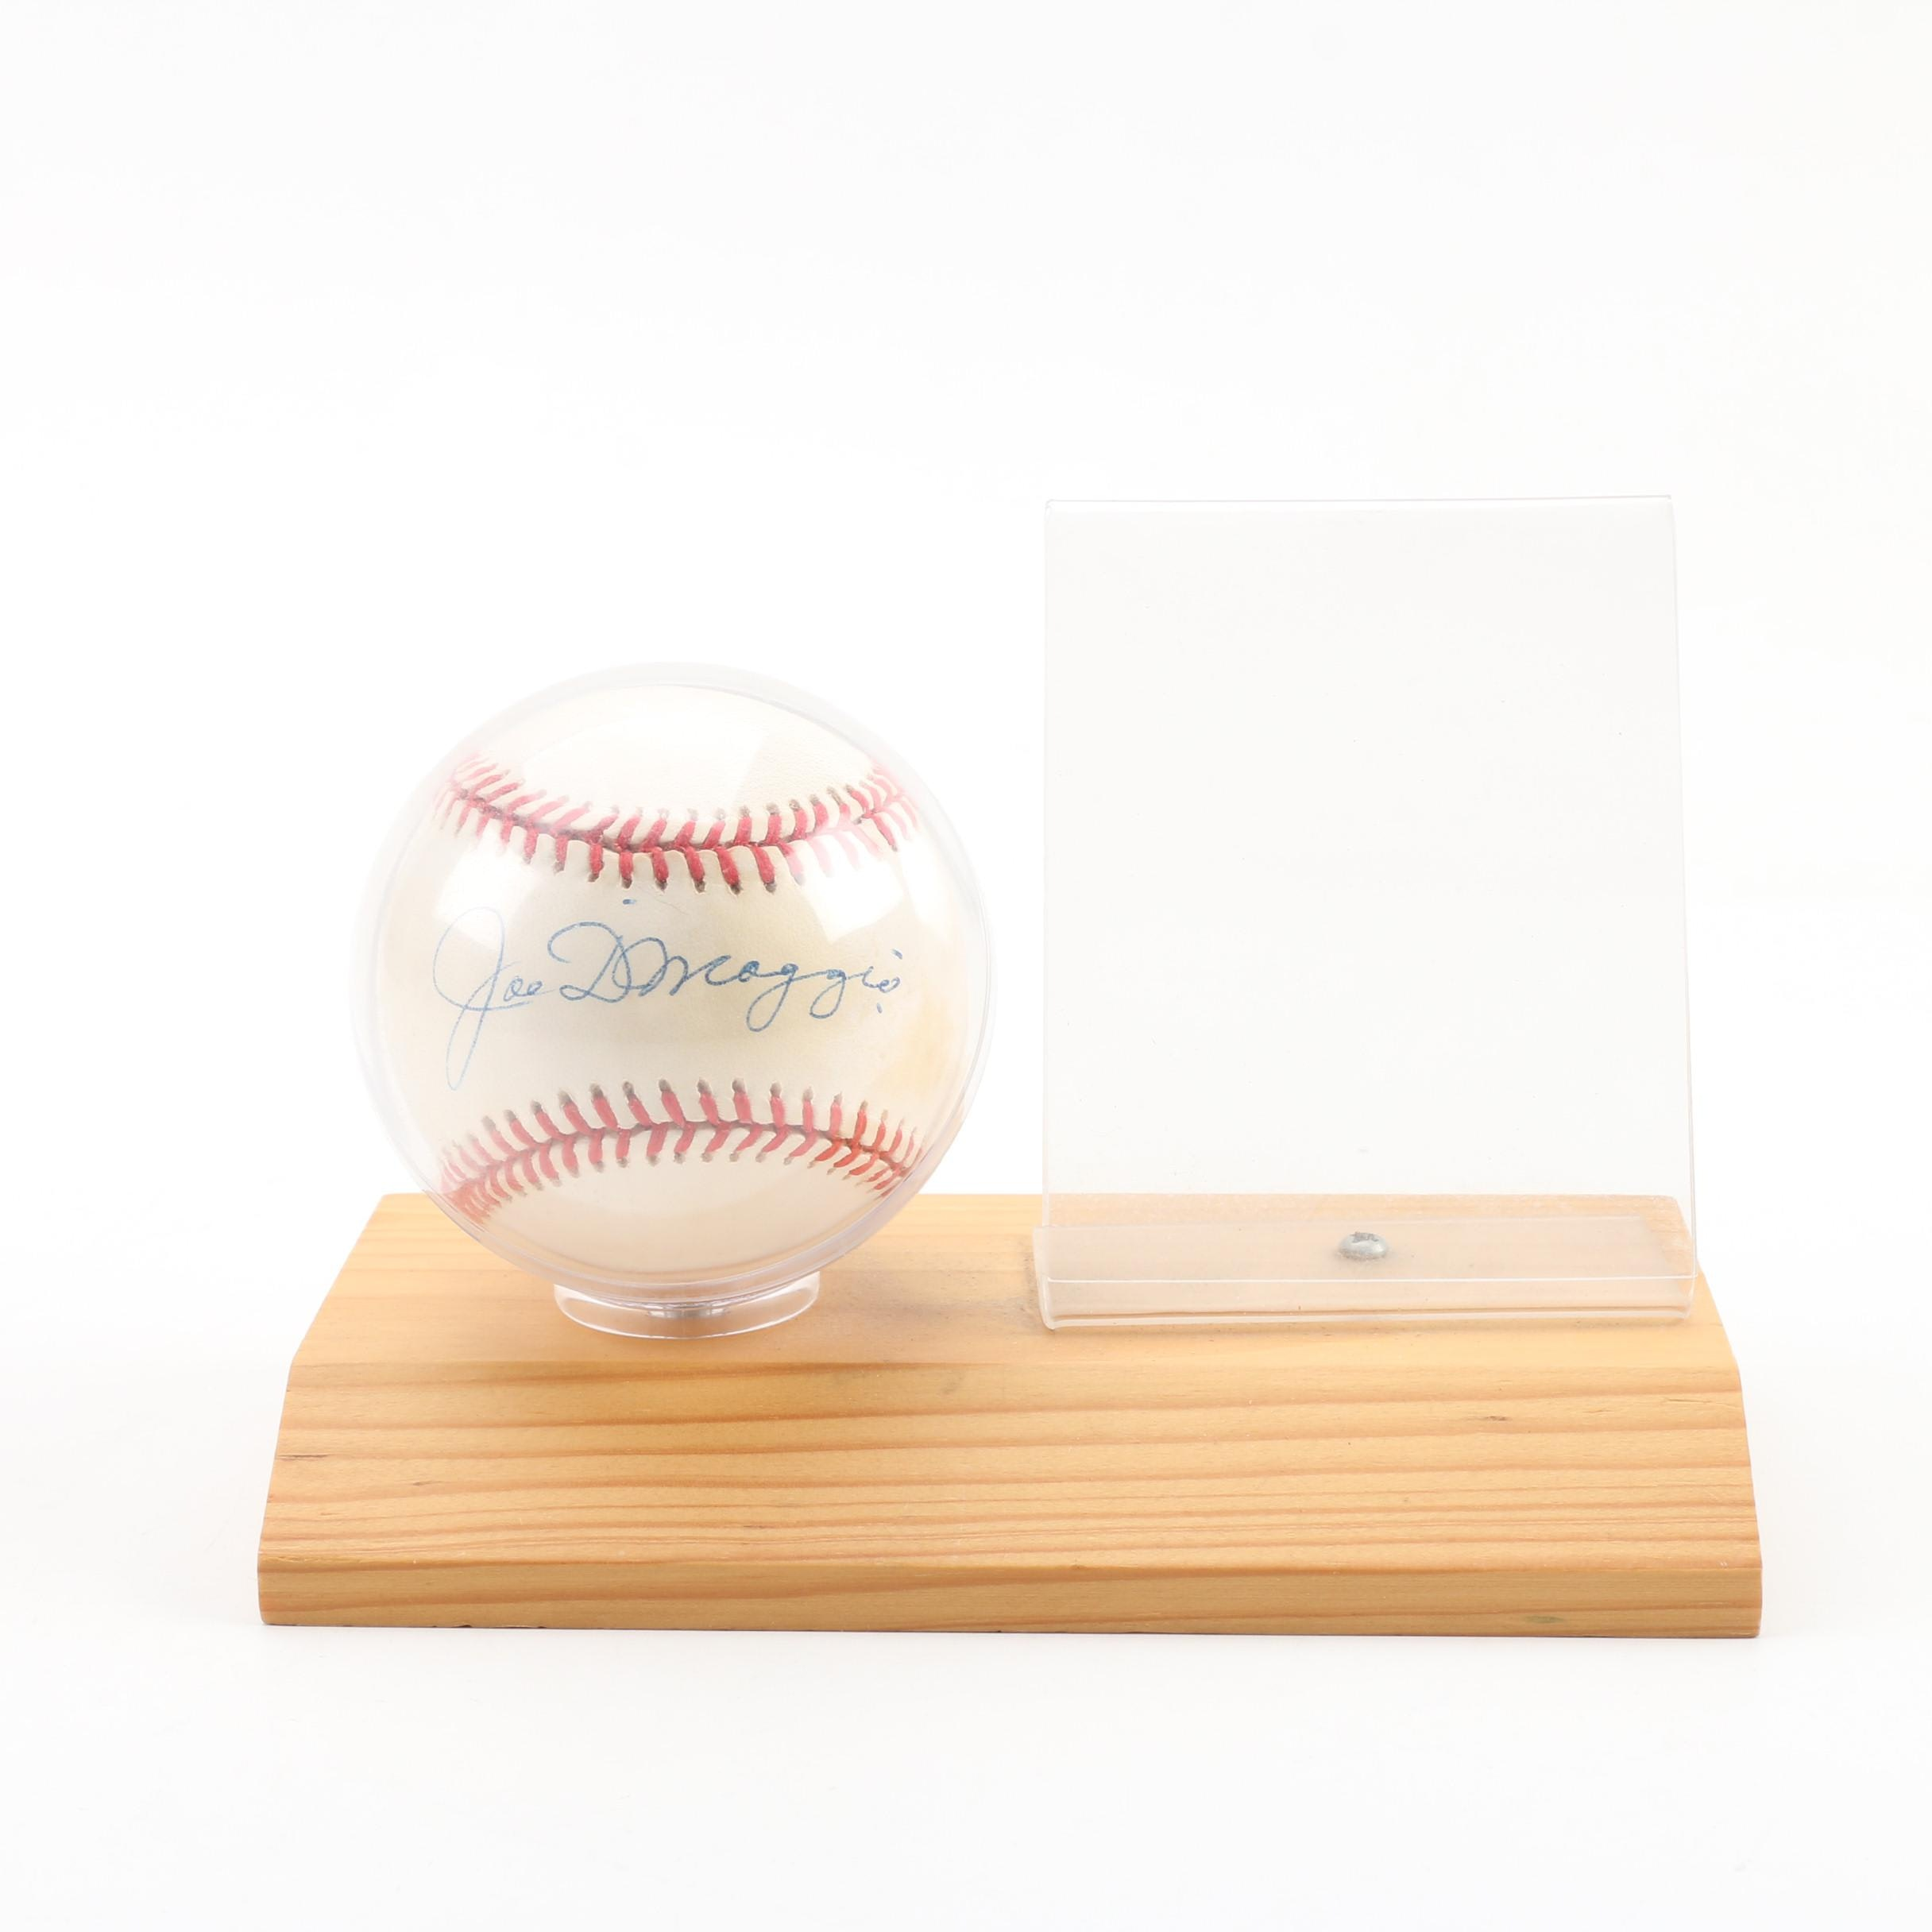 Joe DiMaggio Autographed Baseball with Presentation Stand